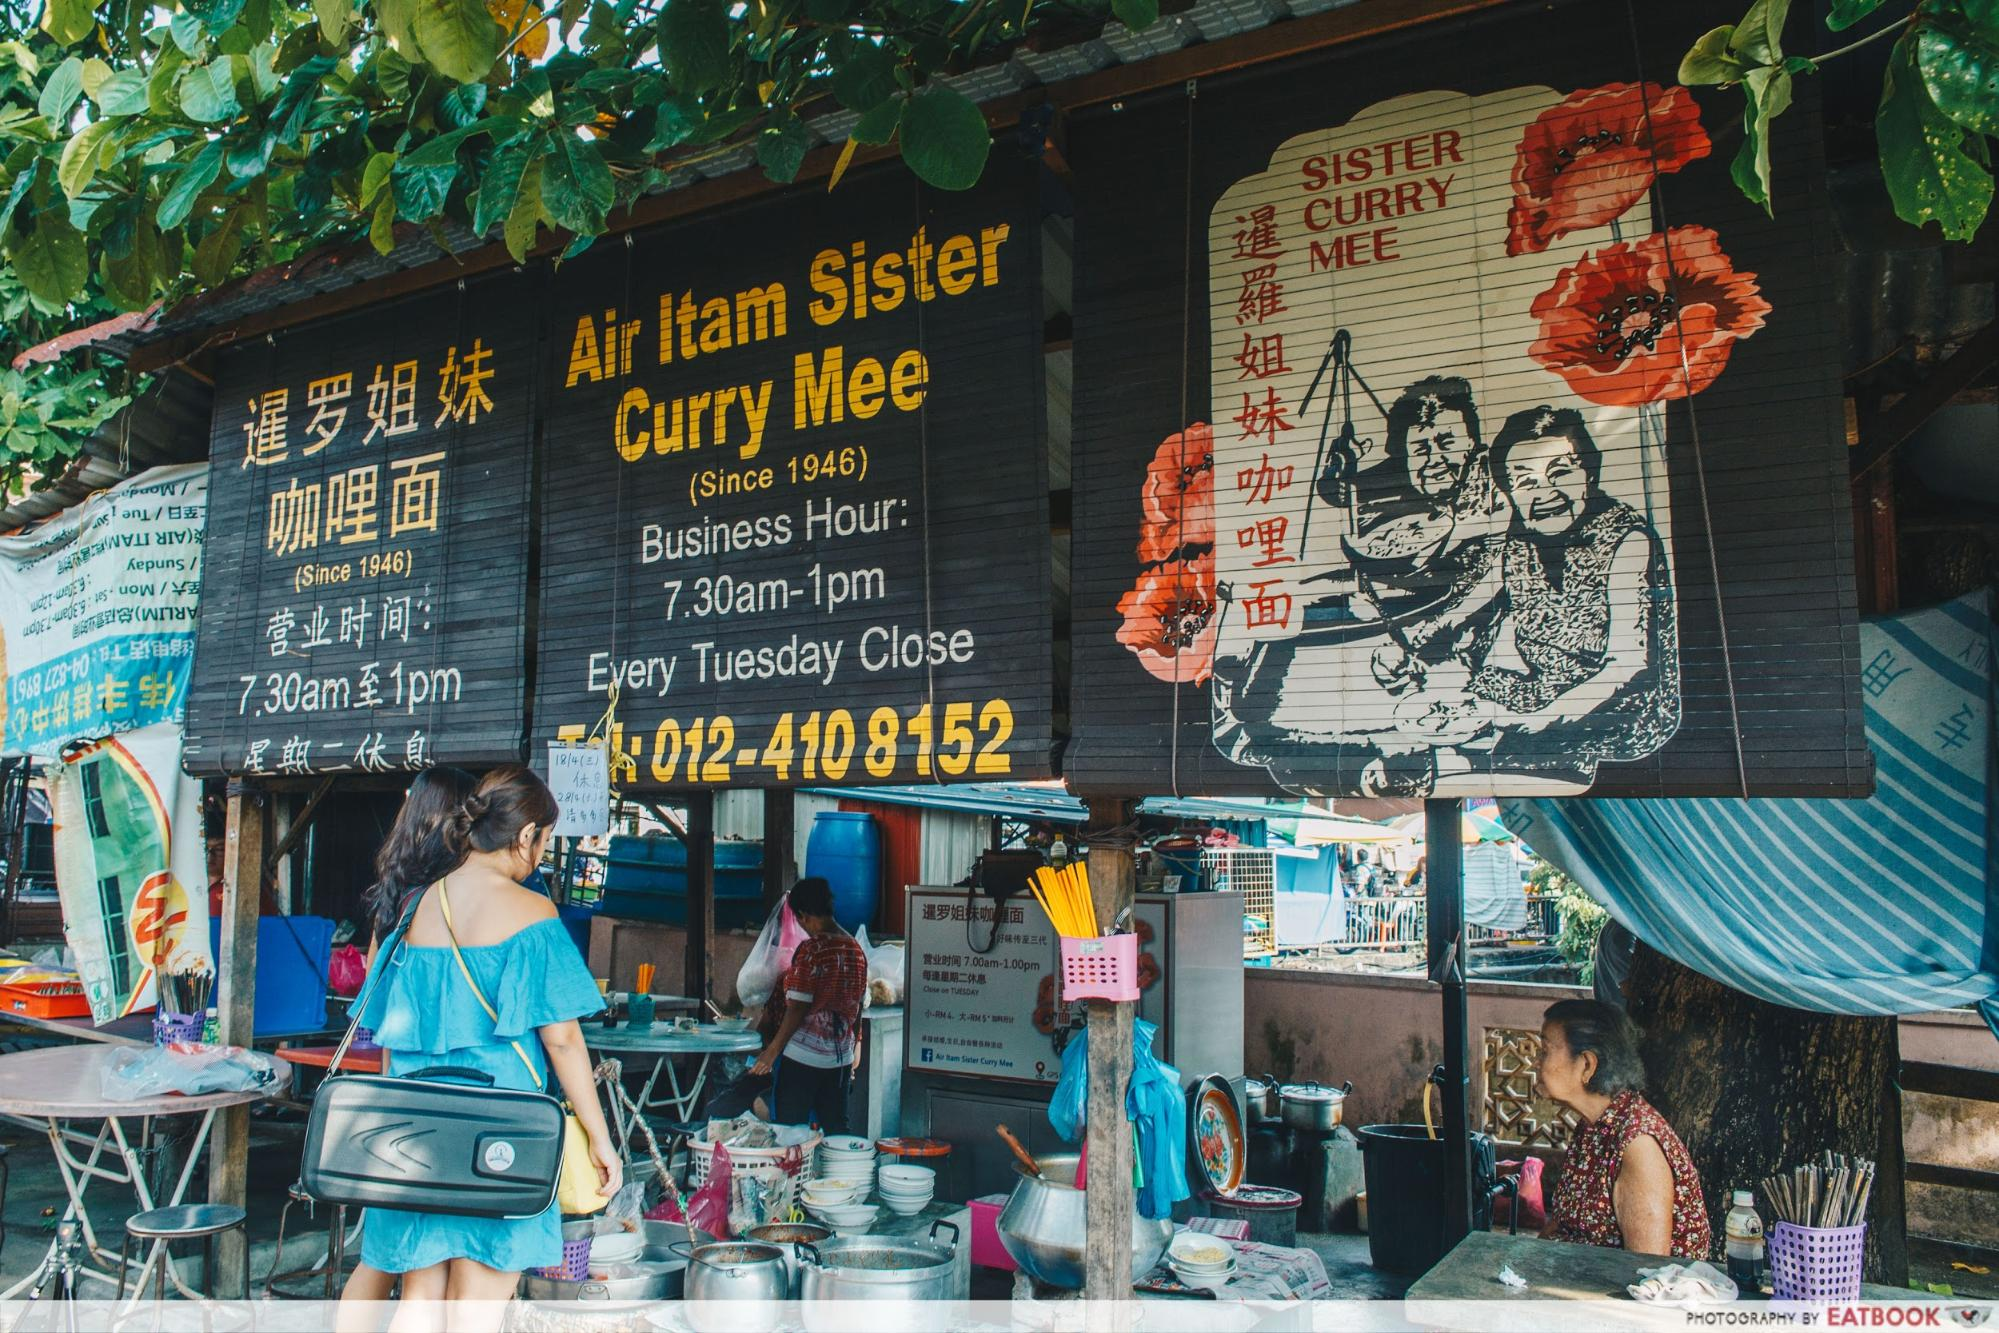 Penang Hawker Food - Air Itam Sister Curry Mee